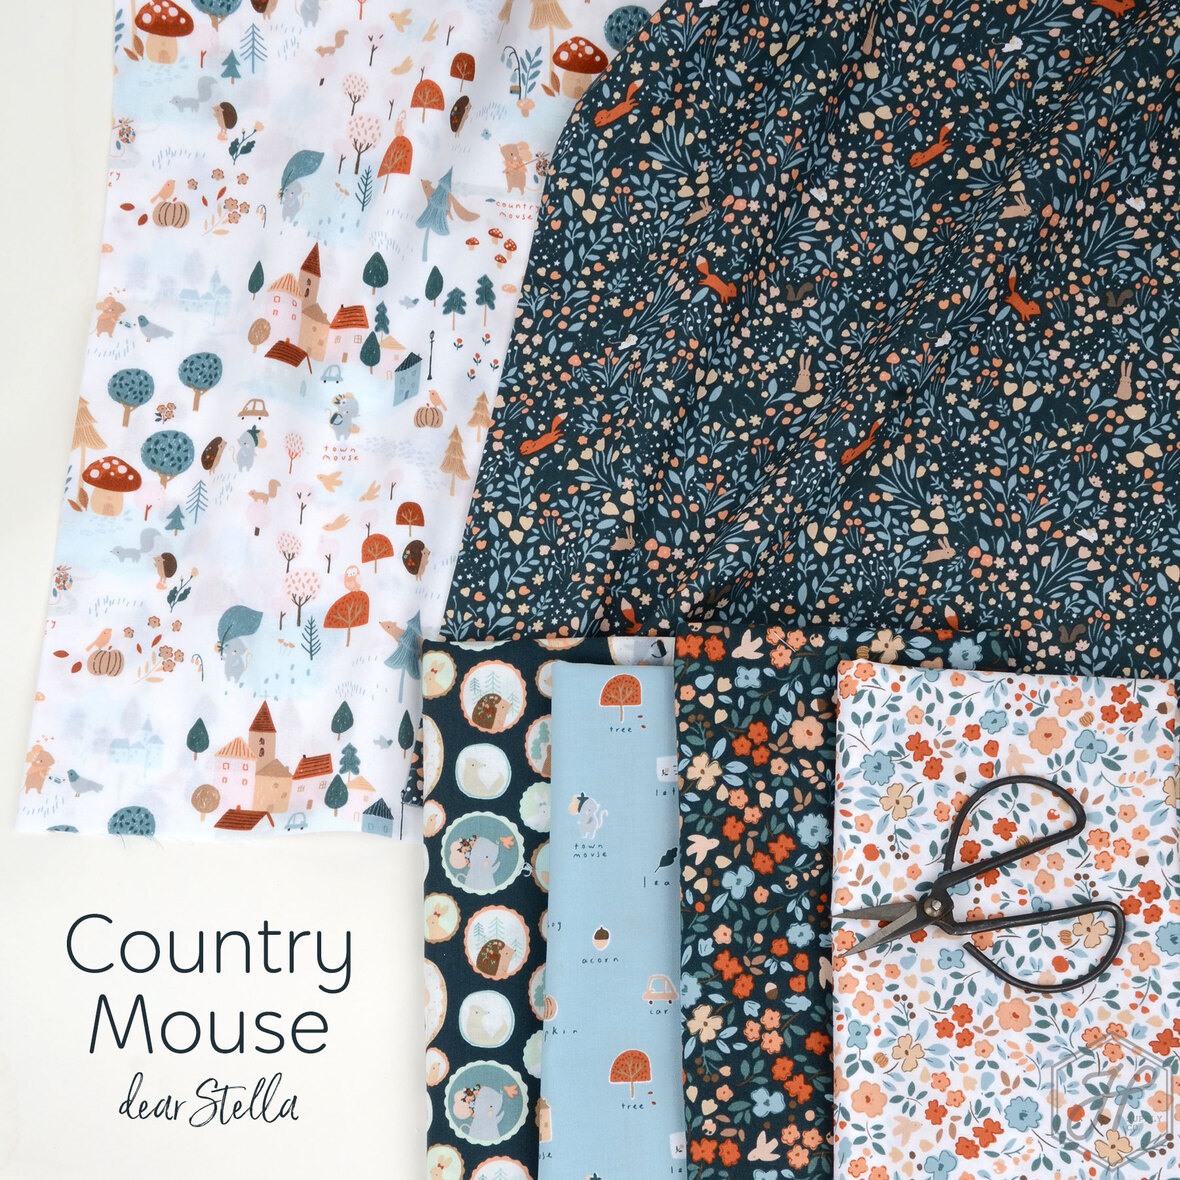 Country-Mouse-Fabric-Poster-Dear-Stella-at-Hawthorne-Supply-Co